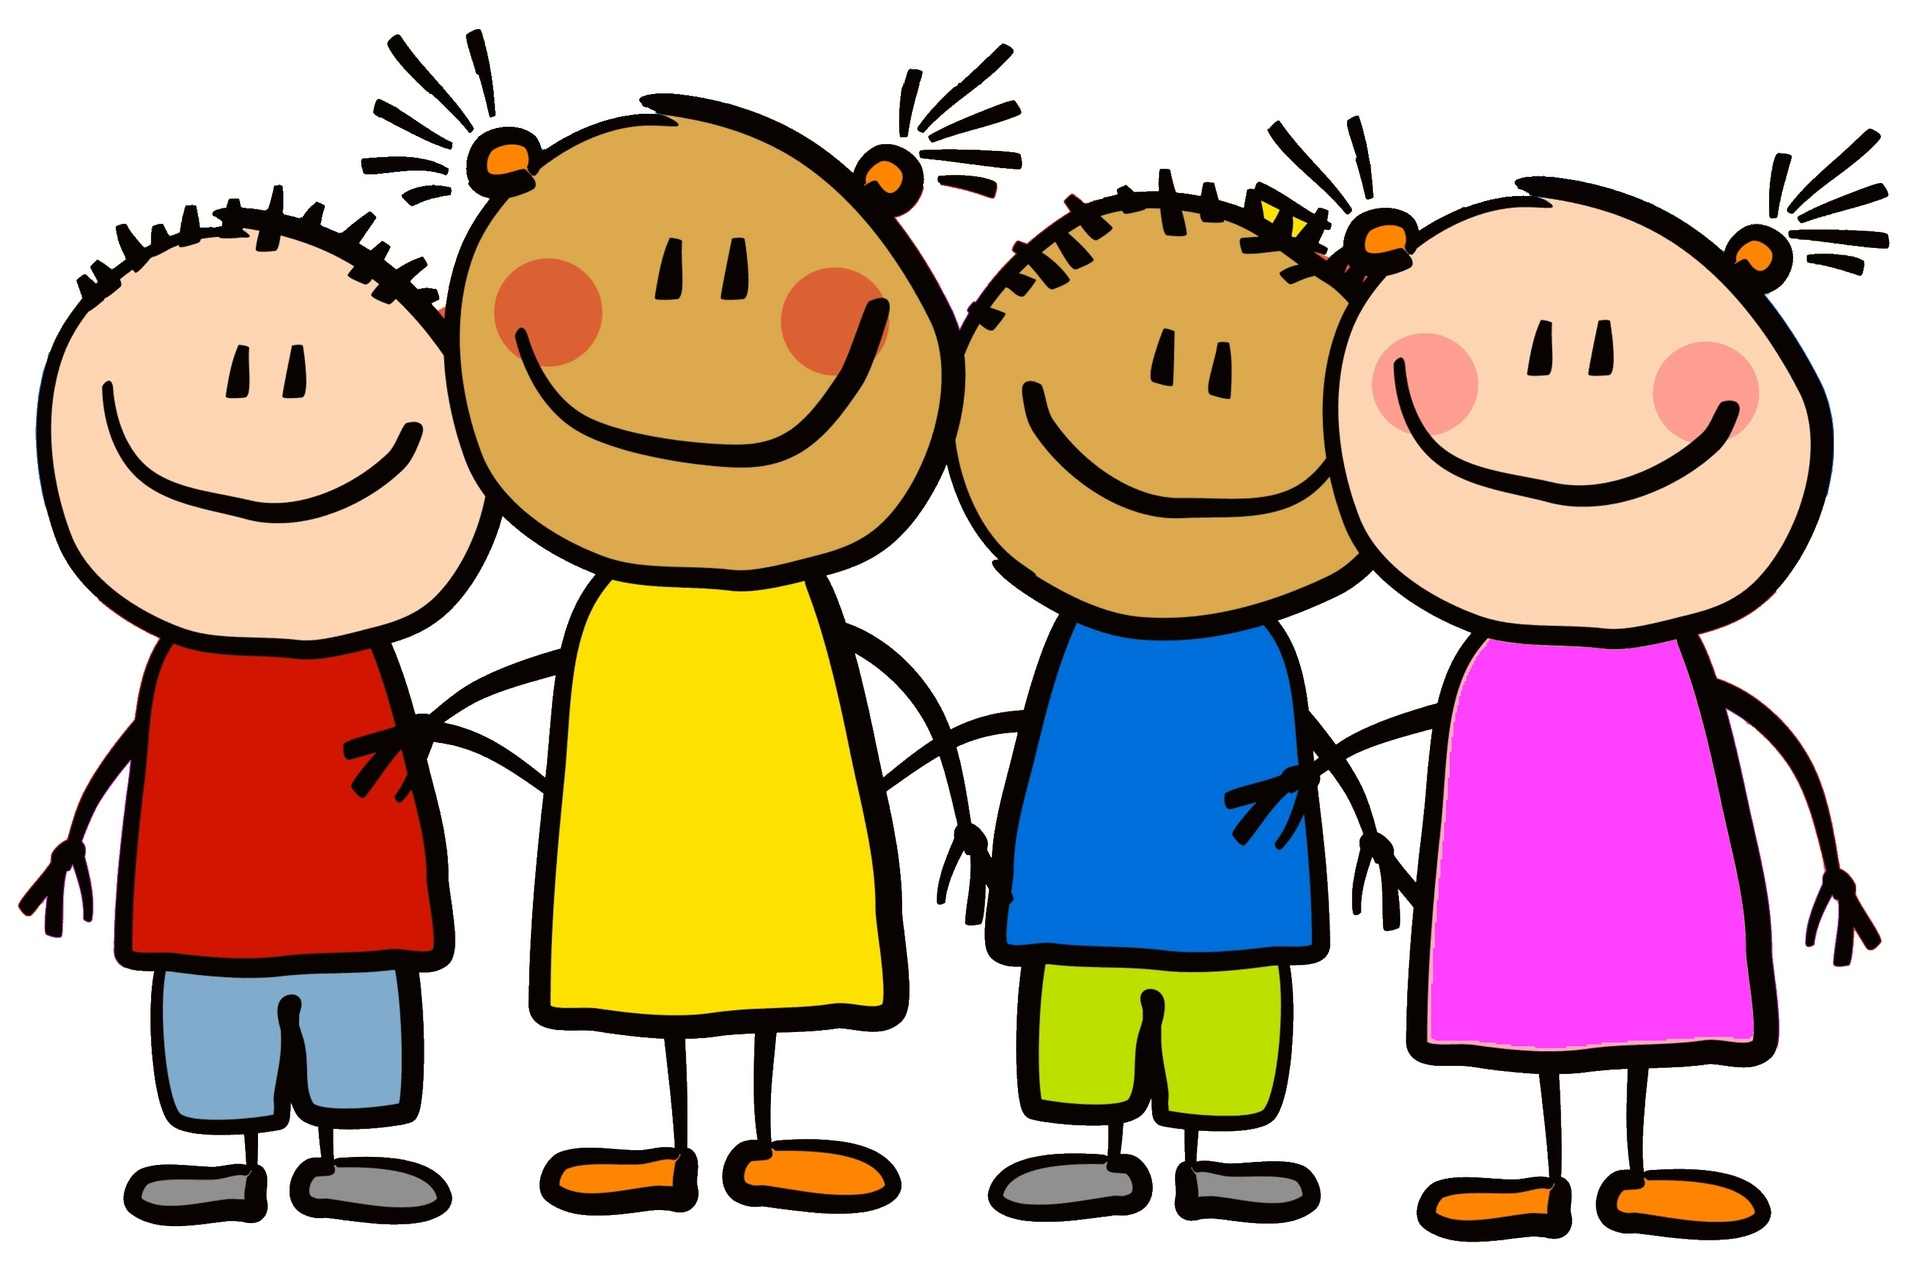 Building clipart day care center Cliparts Meeting Cliparts Kids clipart